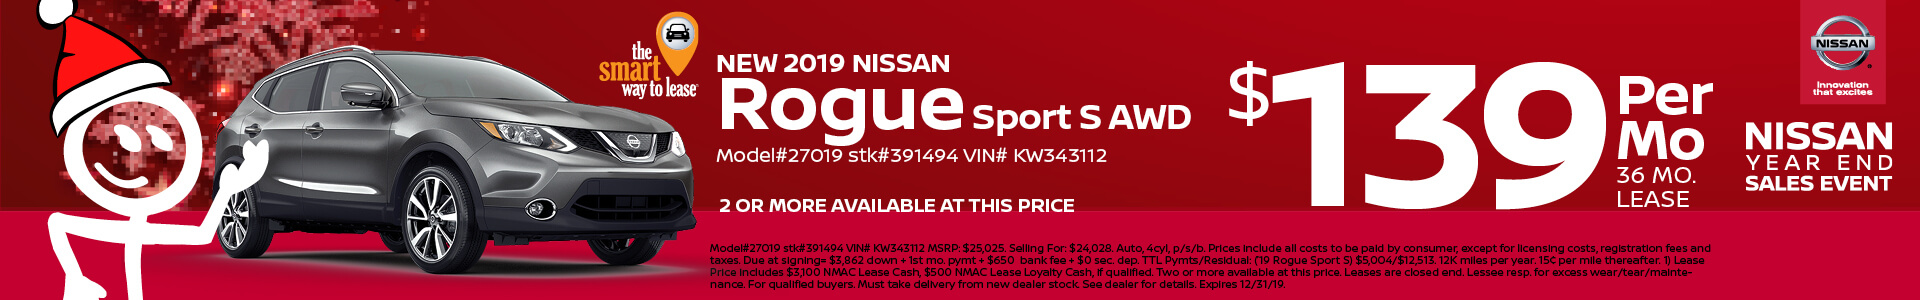 2019 Nissan Rogue Sprt Lease for $229